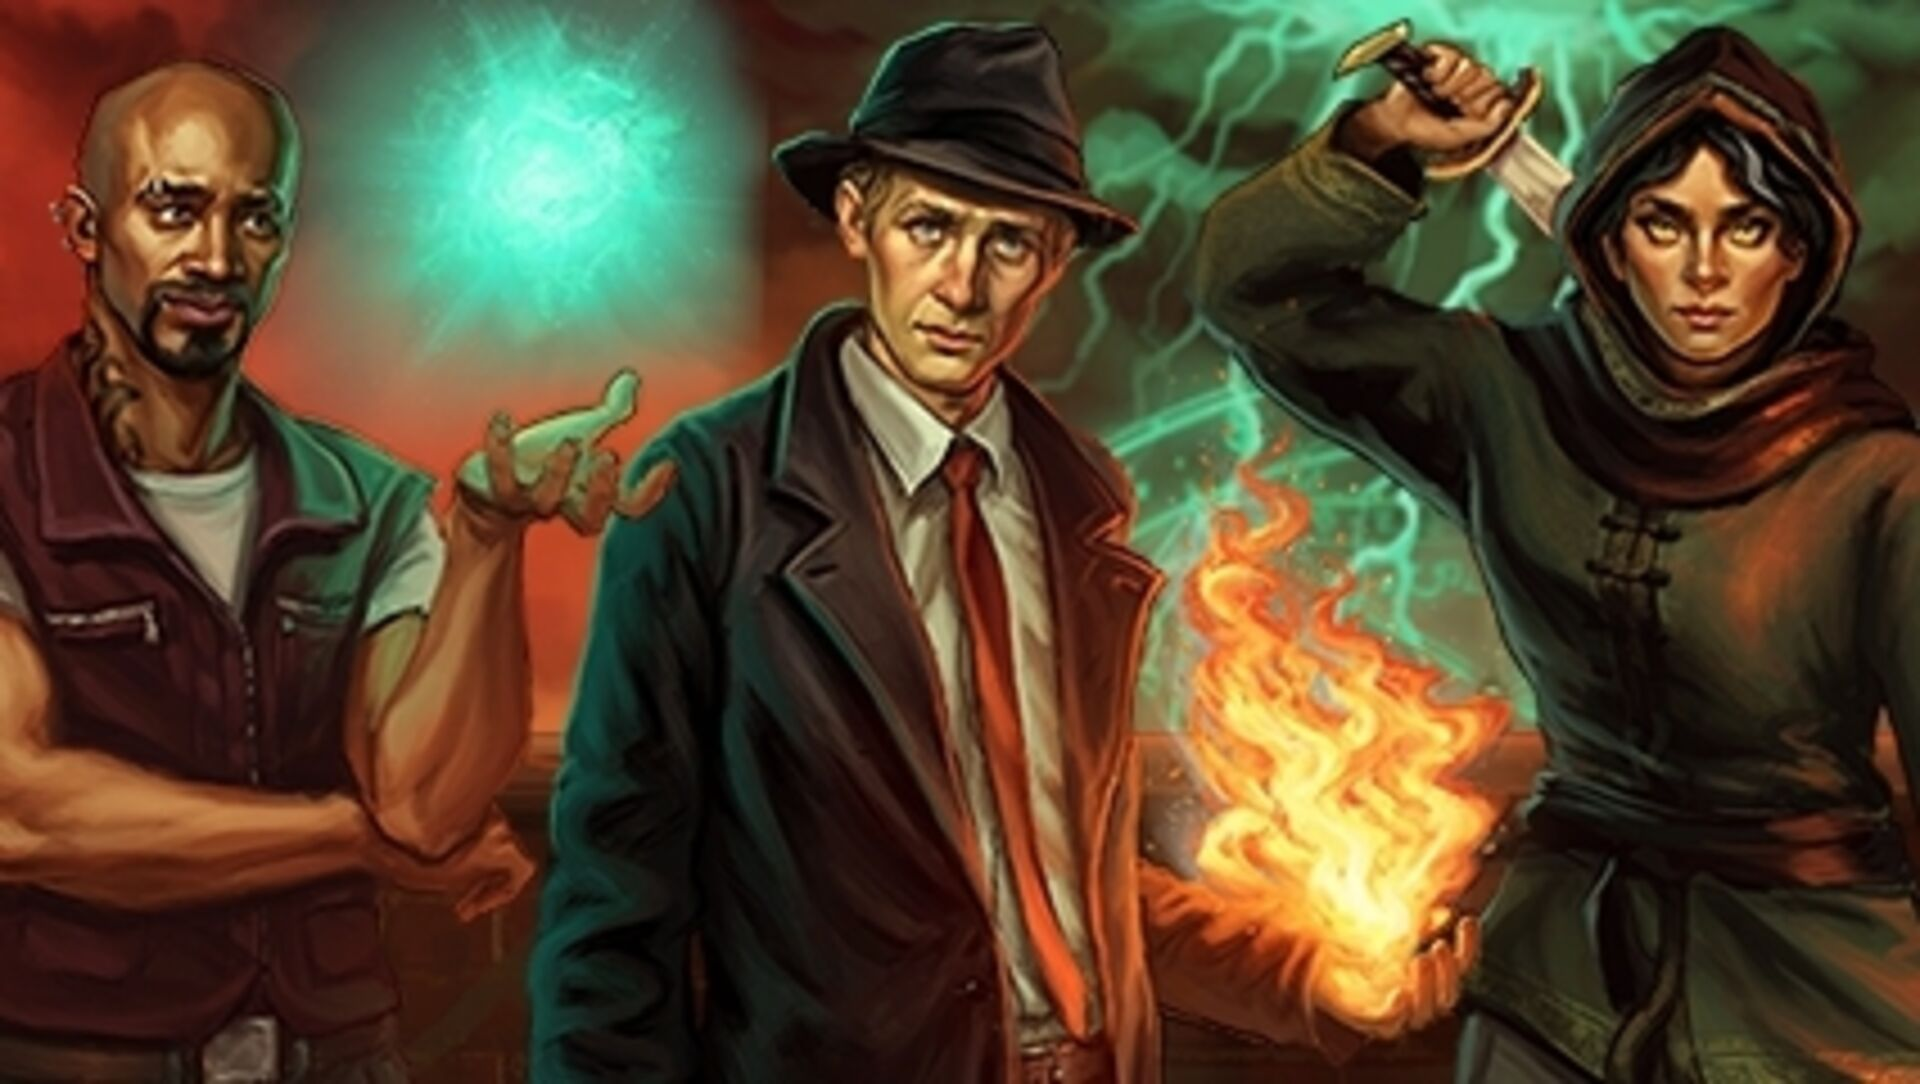 Ambitious, BioWare-inspired demonic point-and-click adventure